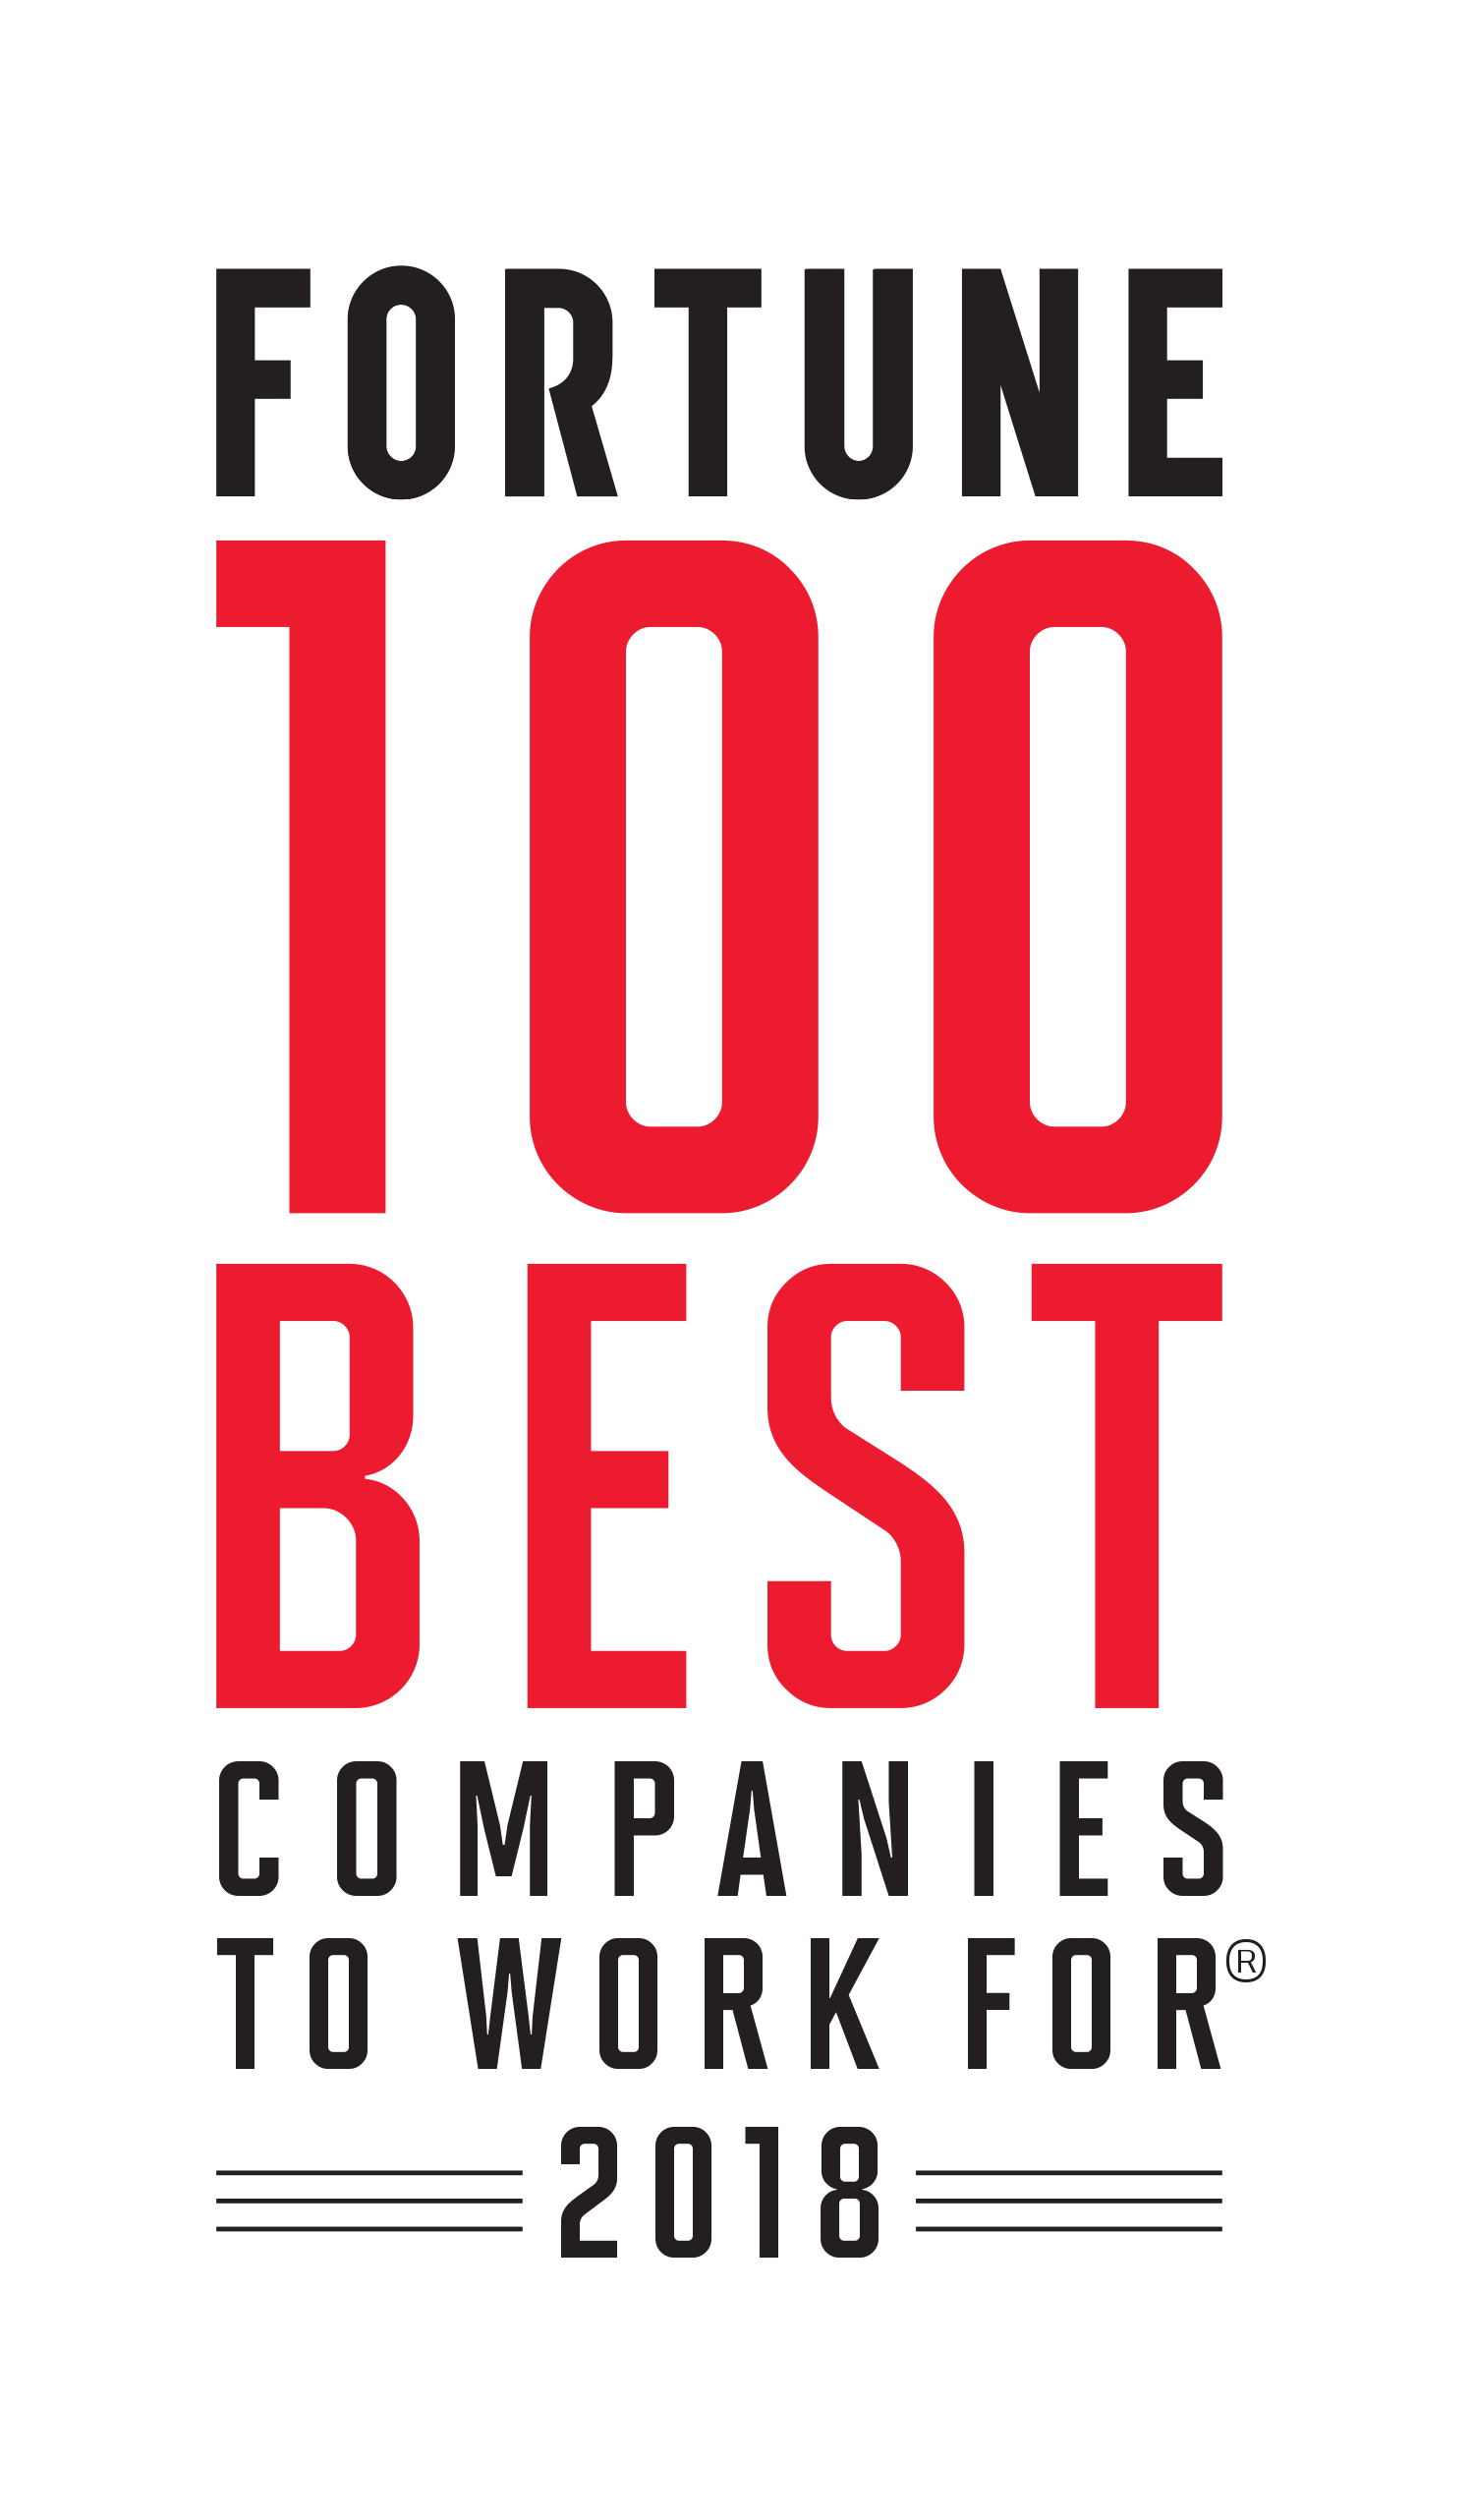 Fortune 100 Best Companies to Work For List Announced Today!